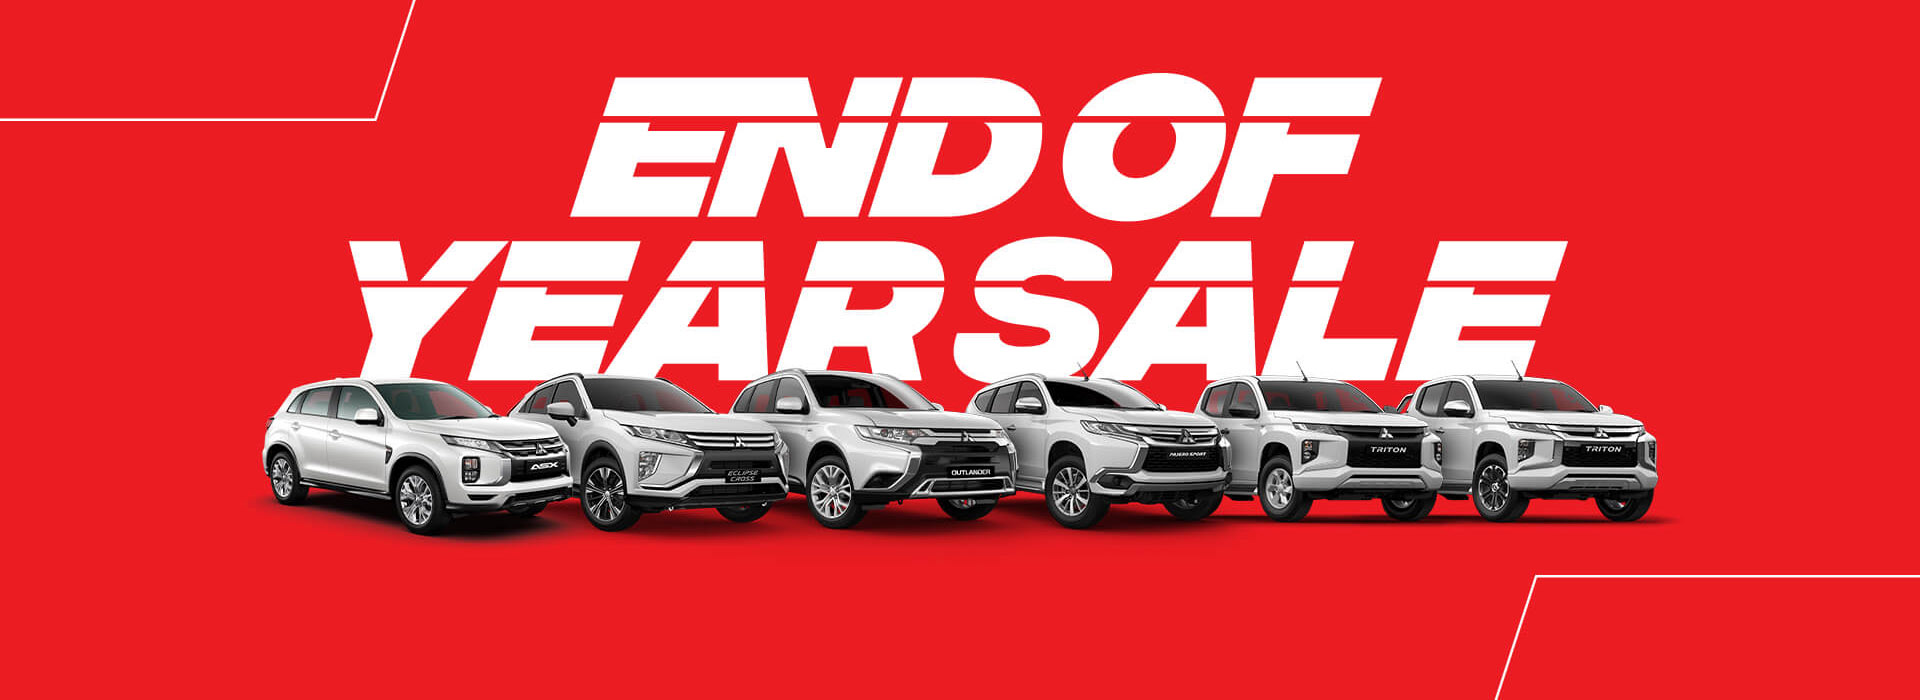 Mitsubishi End of Year Sale